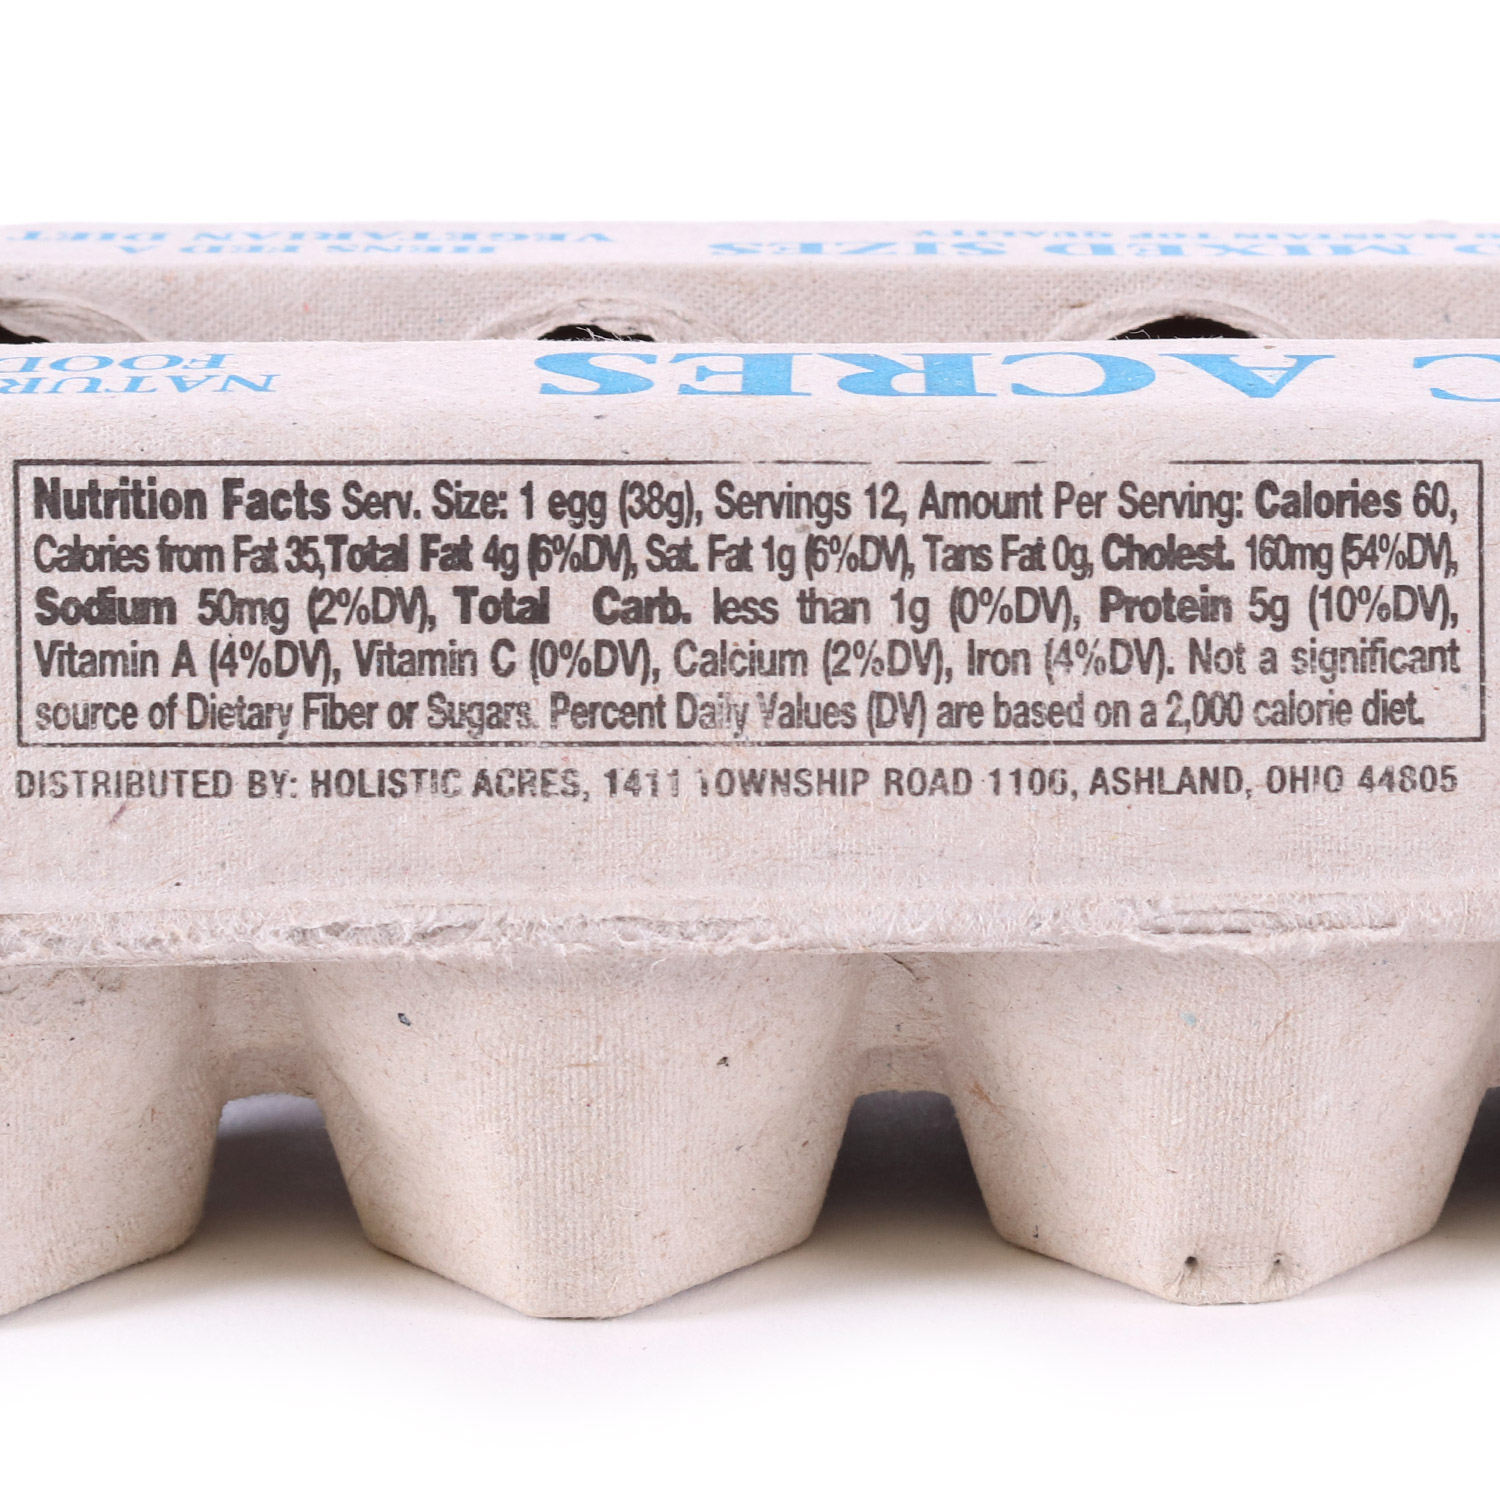 Eggs, Cage Free (OH)